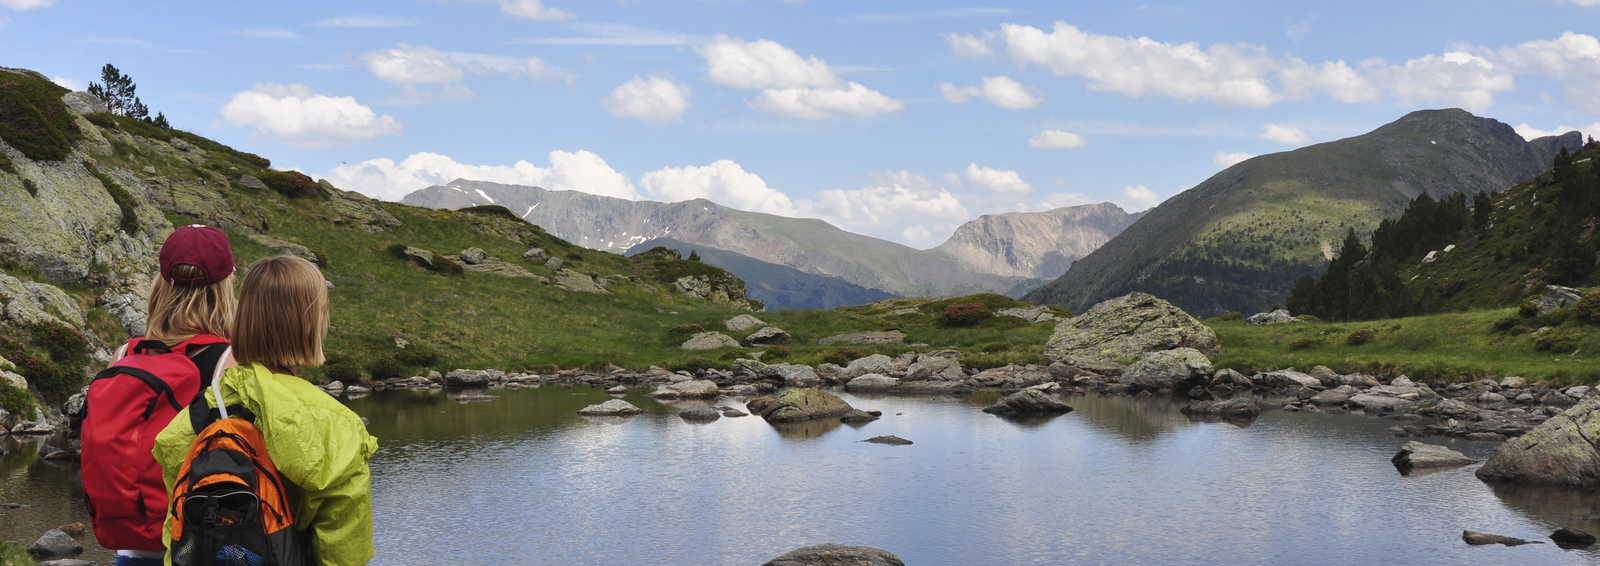 Lake in the Pyrenees, France